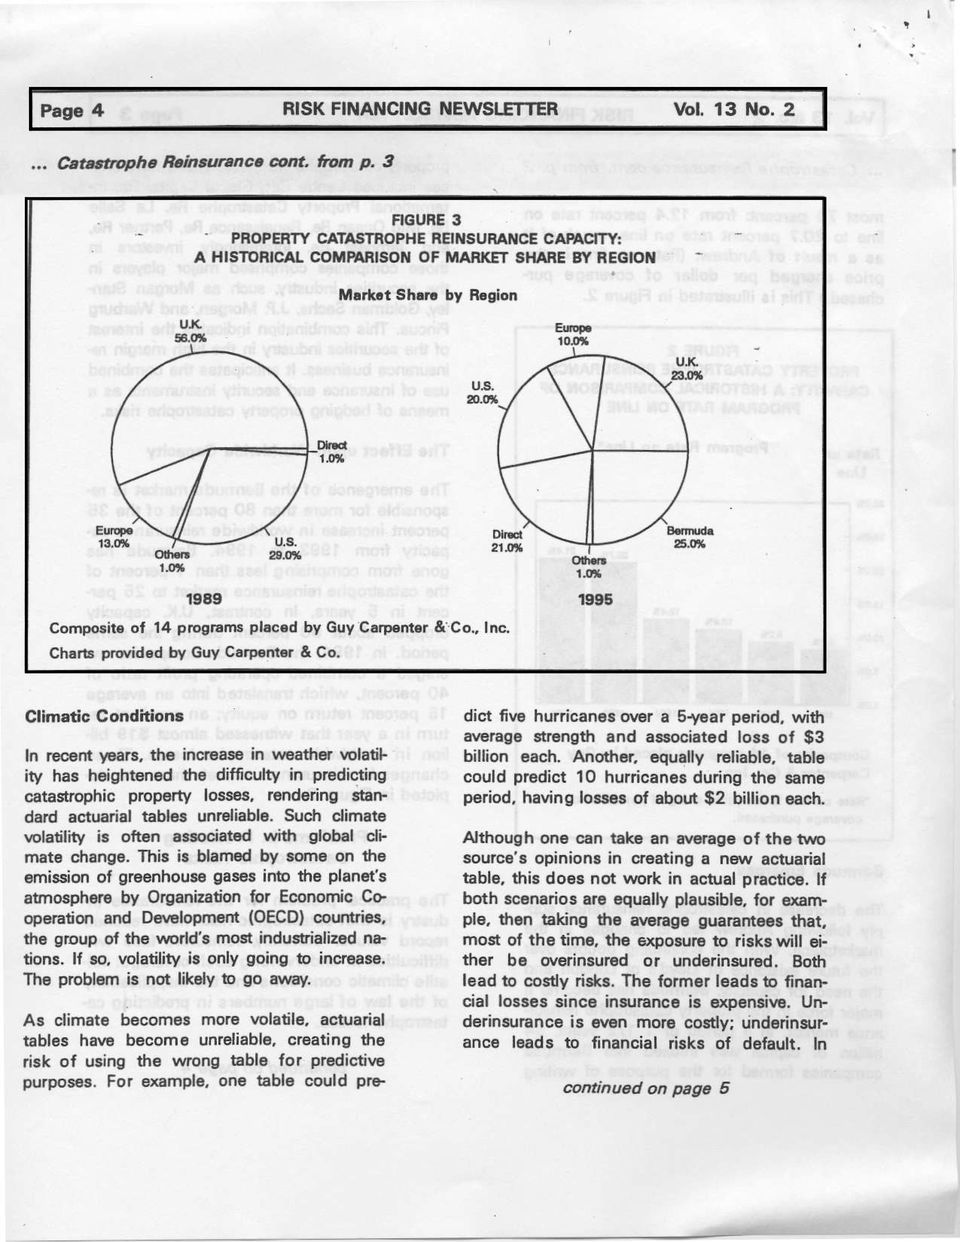 0% 1989 Composite of 14 programs placed by Guy Carpenter &-Co., Inc. Charts provided by Guy Carpenter & Co. others 1.